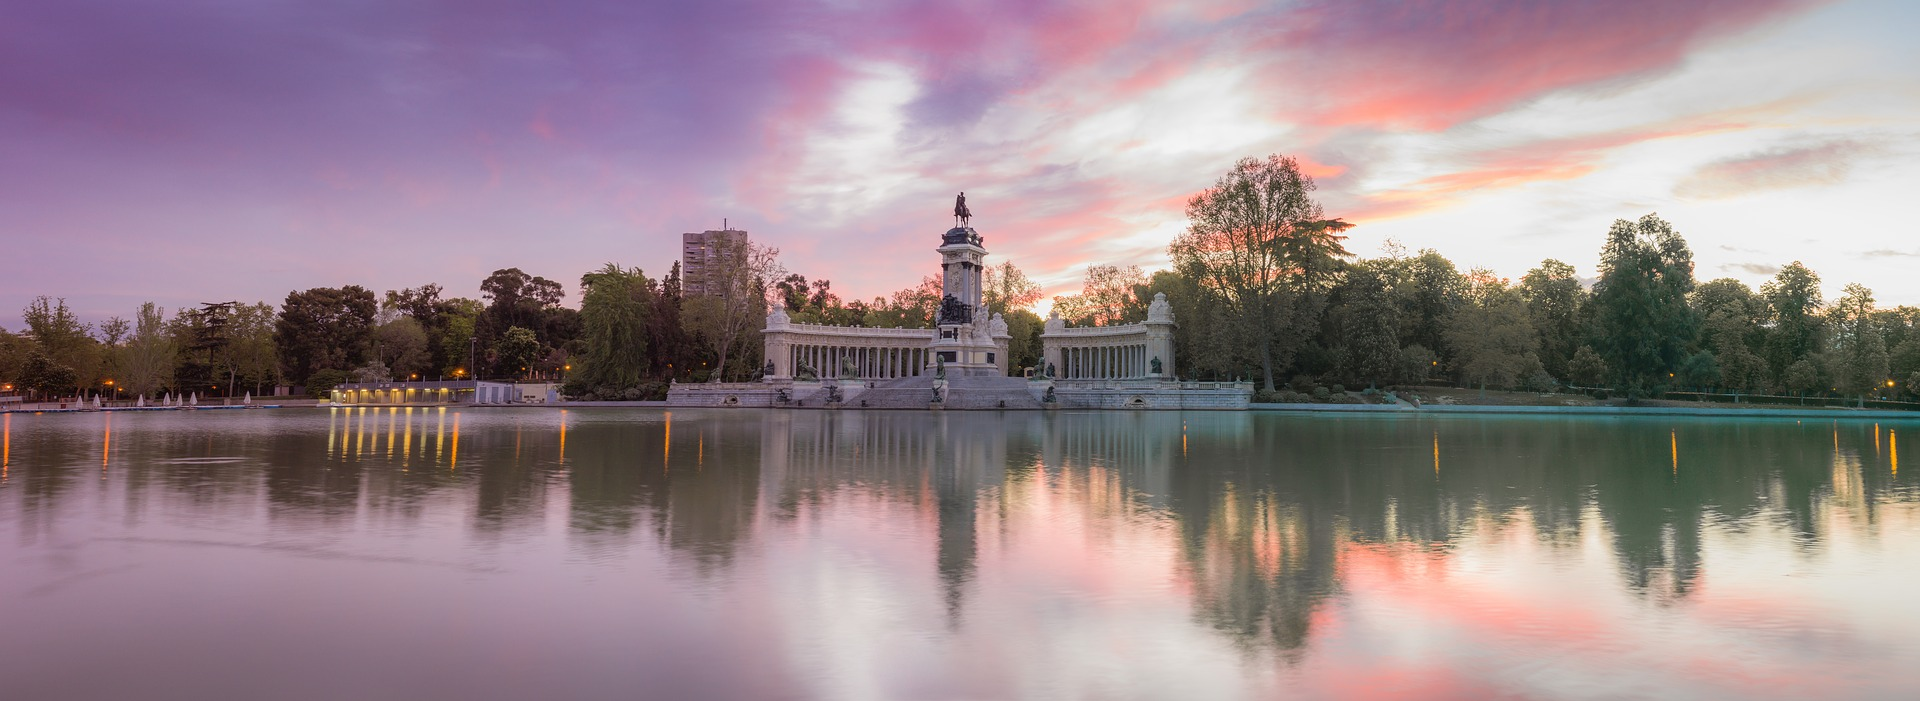 Real Reisen - Wochenende in Madrid ab 41,98€ La Liga & Sightseeing